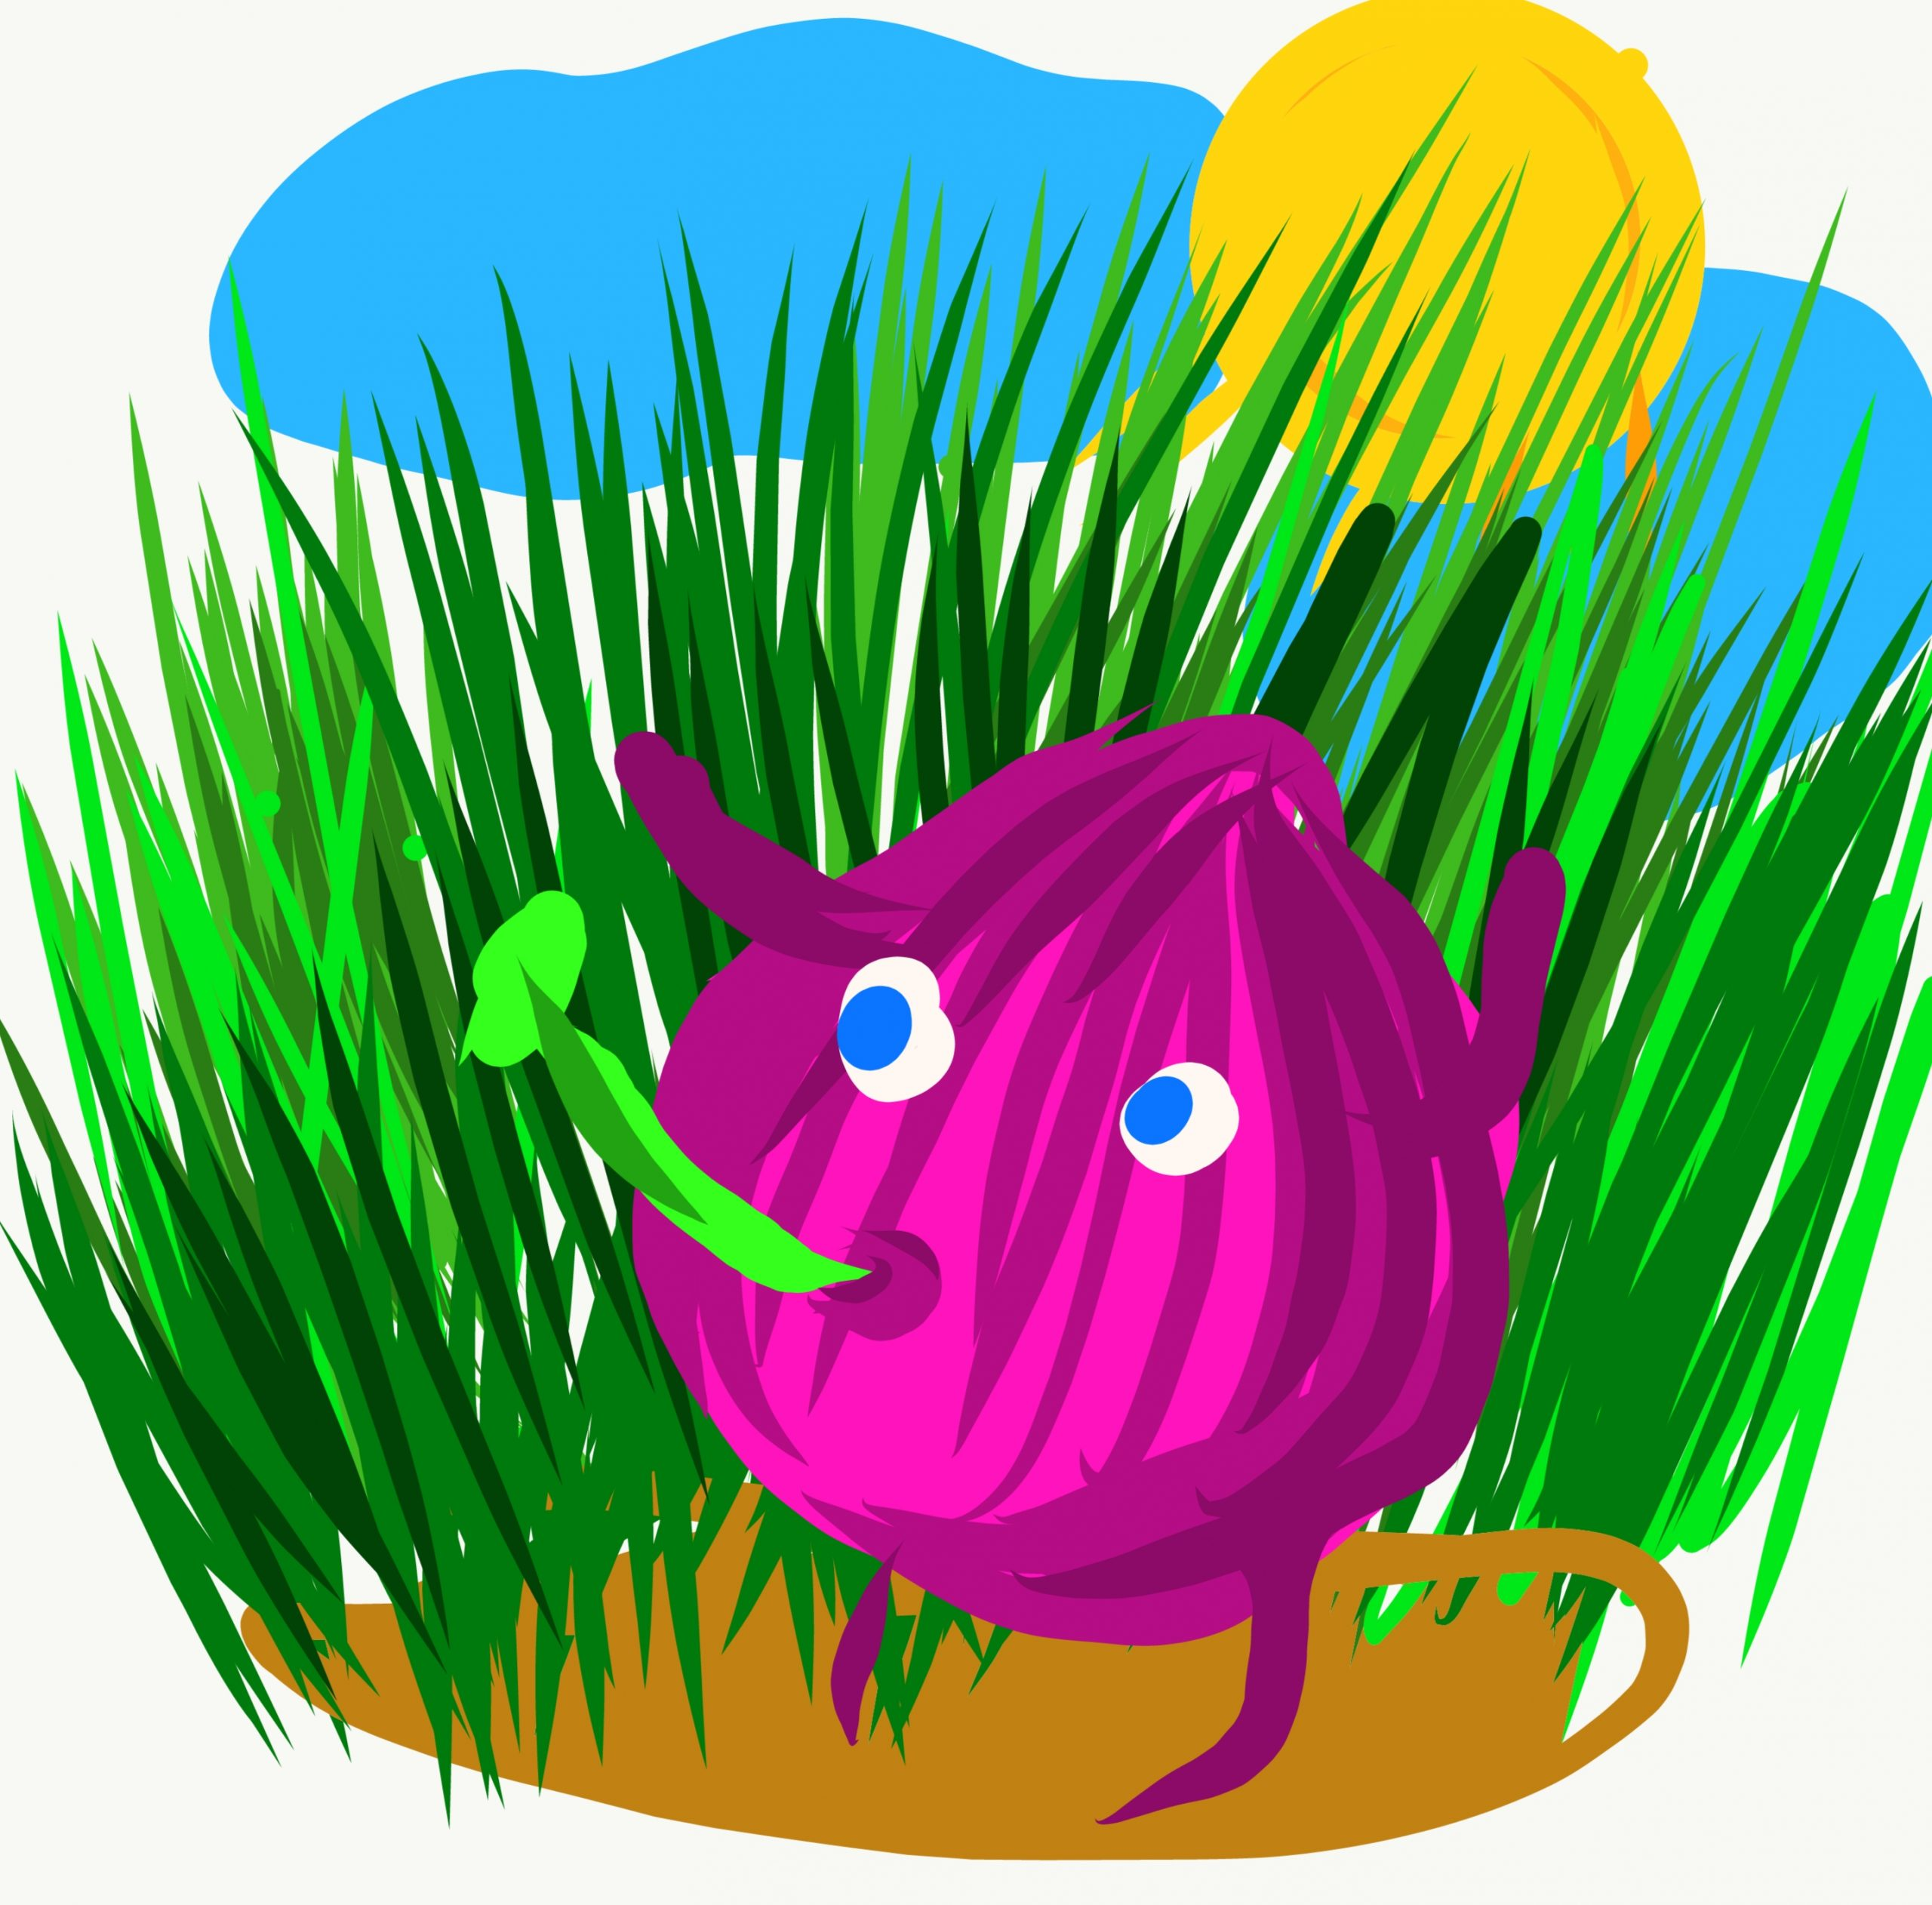 Onion and grass illustration